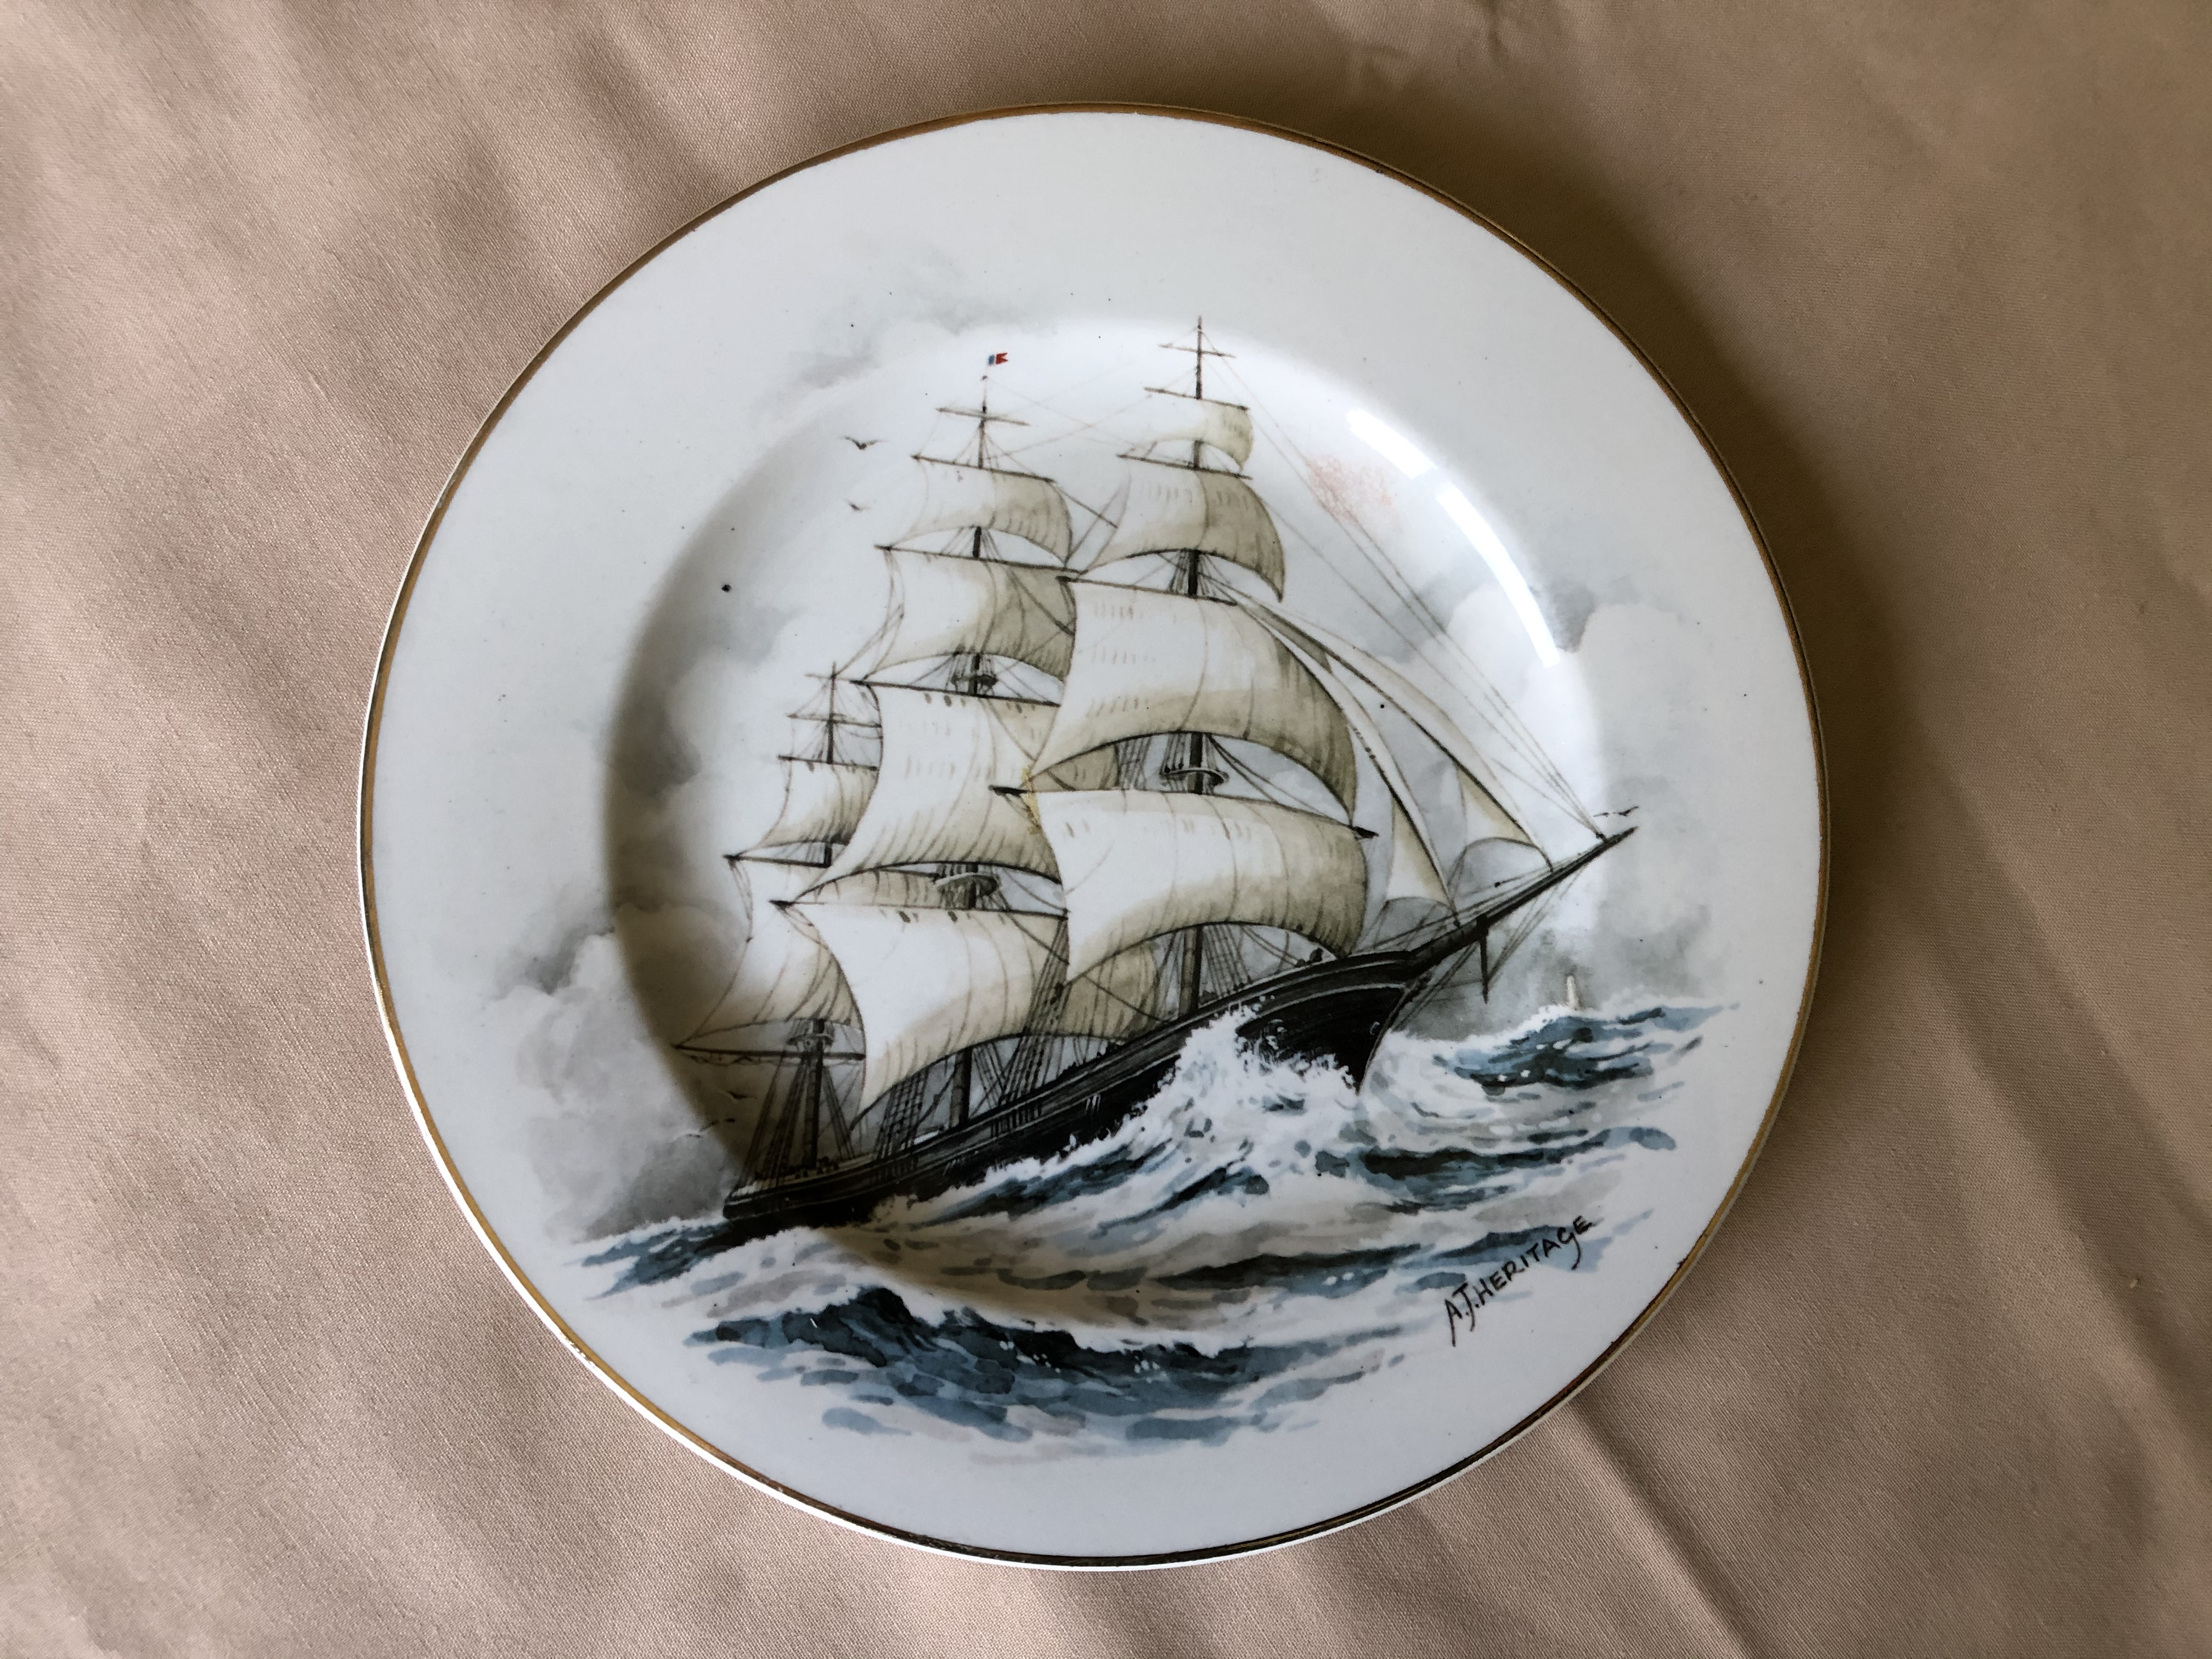 DISPLAY PLATE OF THE OLD SEA GOING VESSEL THE FYING CLOUD